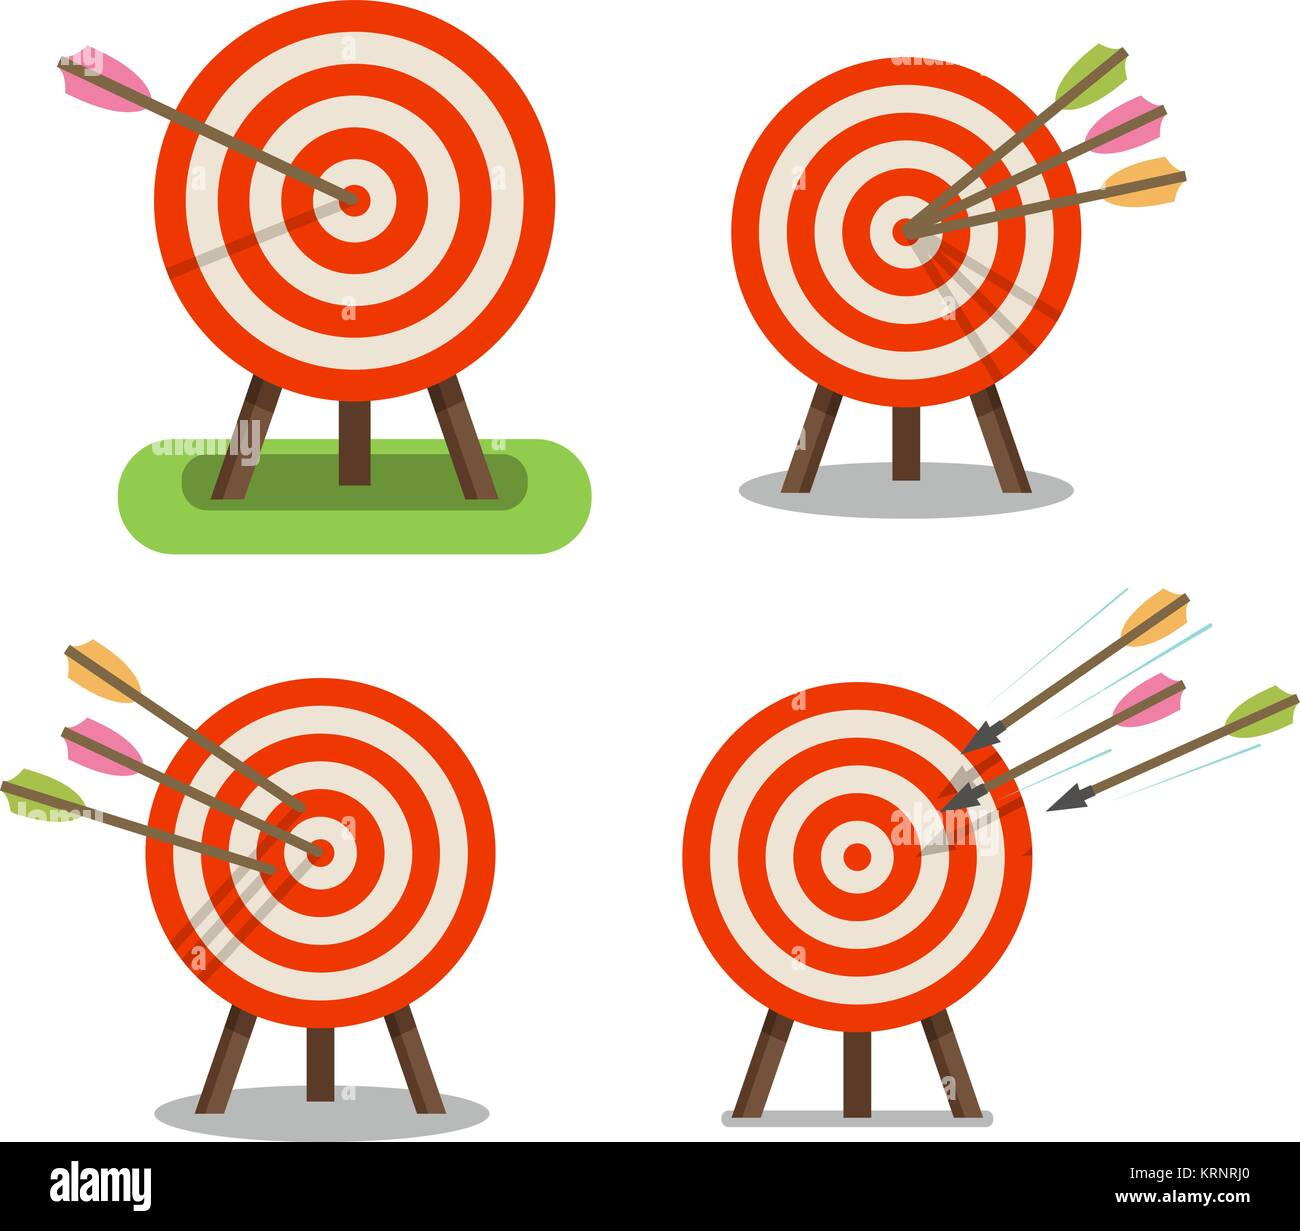 Arrows and target standing on tripod. Purpose, goal, accuracy icon. Vector illustration - Stock Image